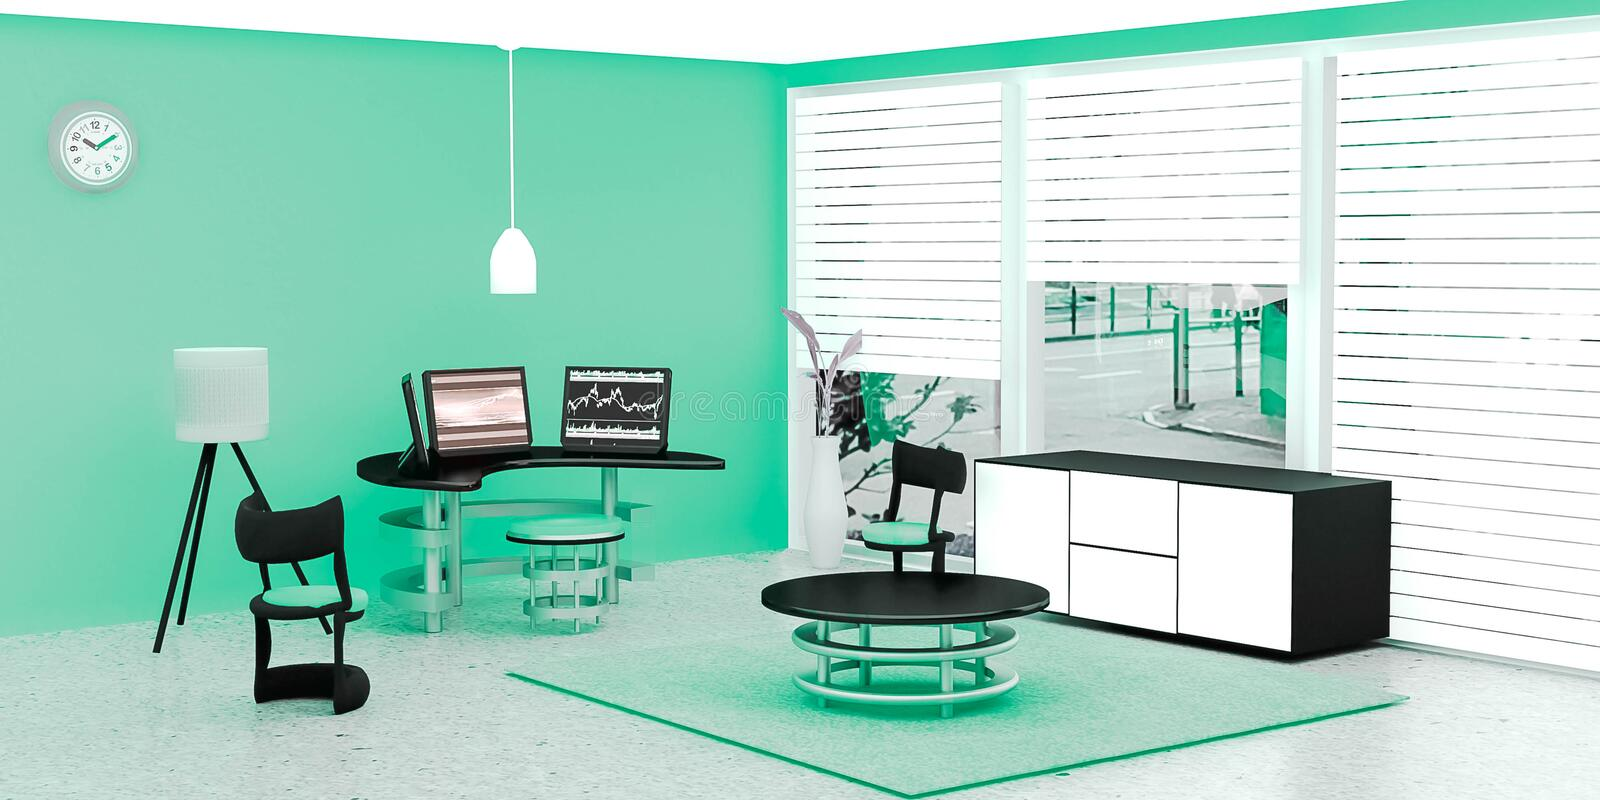 Modern working room interior, 3 black desktop computer put on a glass table in front of green wall. A lamp and flower pot place on marble floor, Cool color royalty free illustration